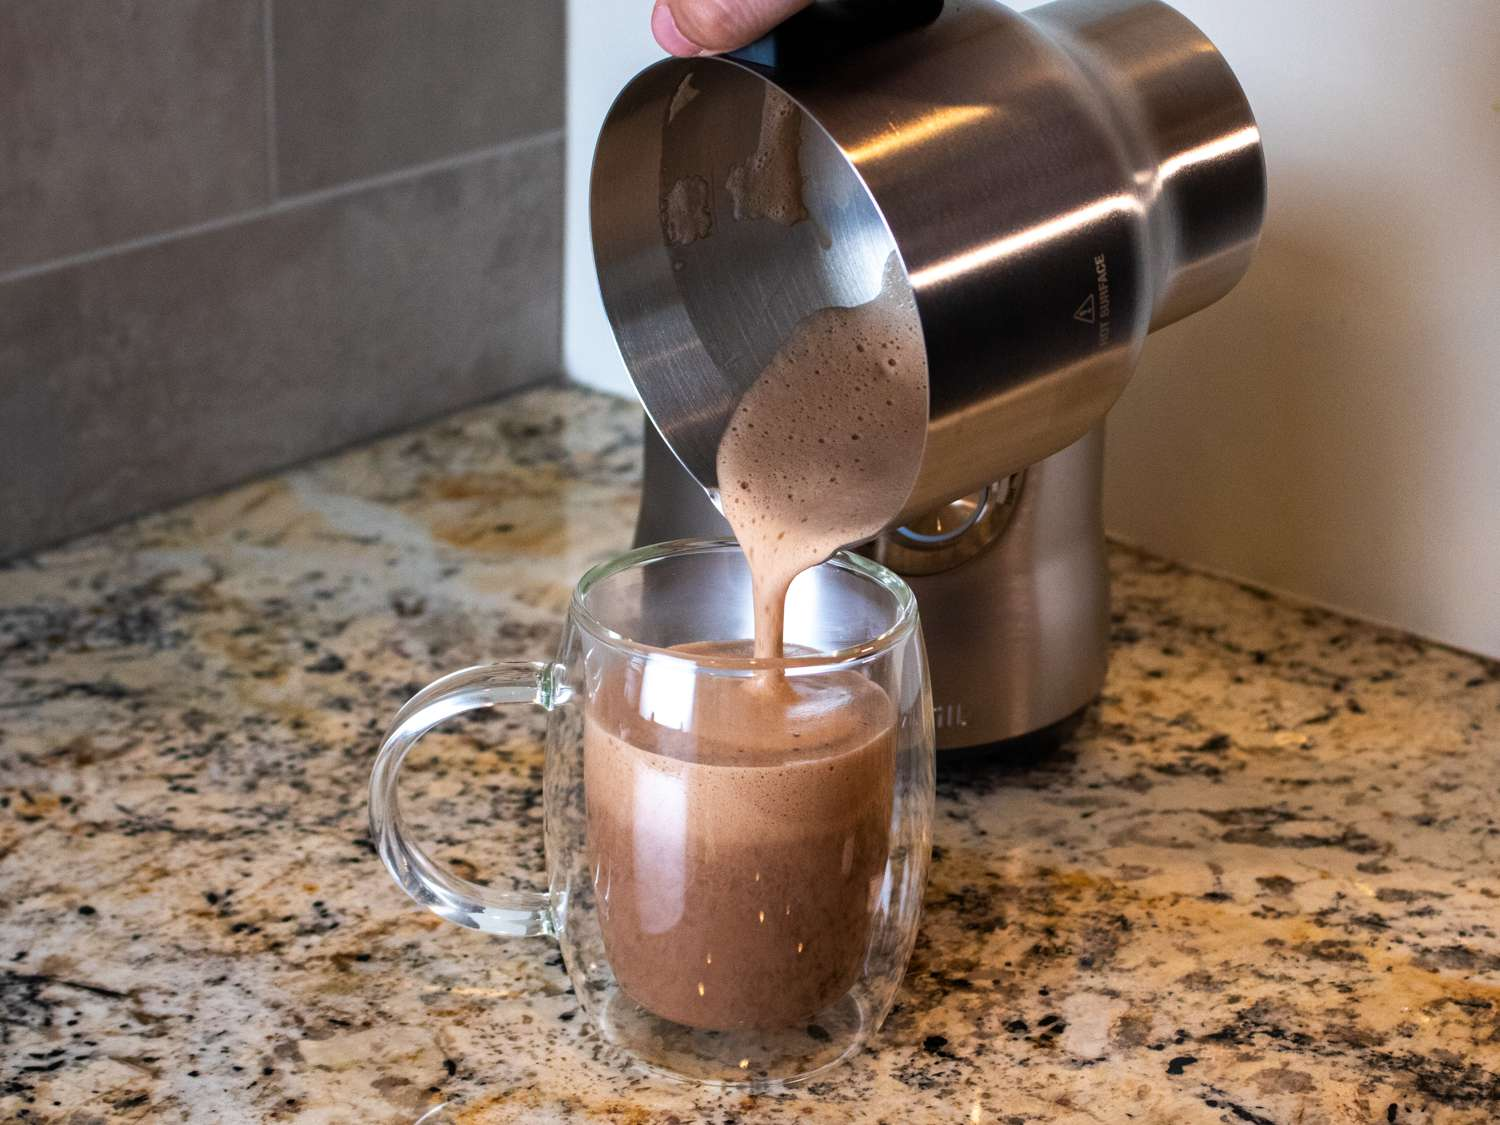 Breville pouring frothed hot chocolate into a mug